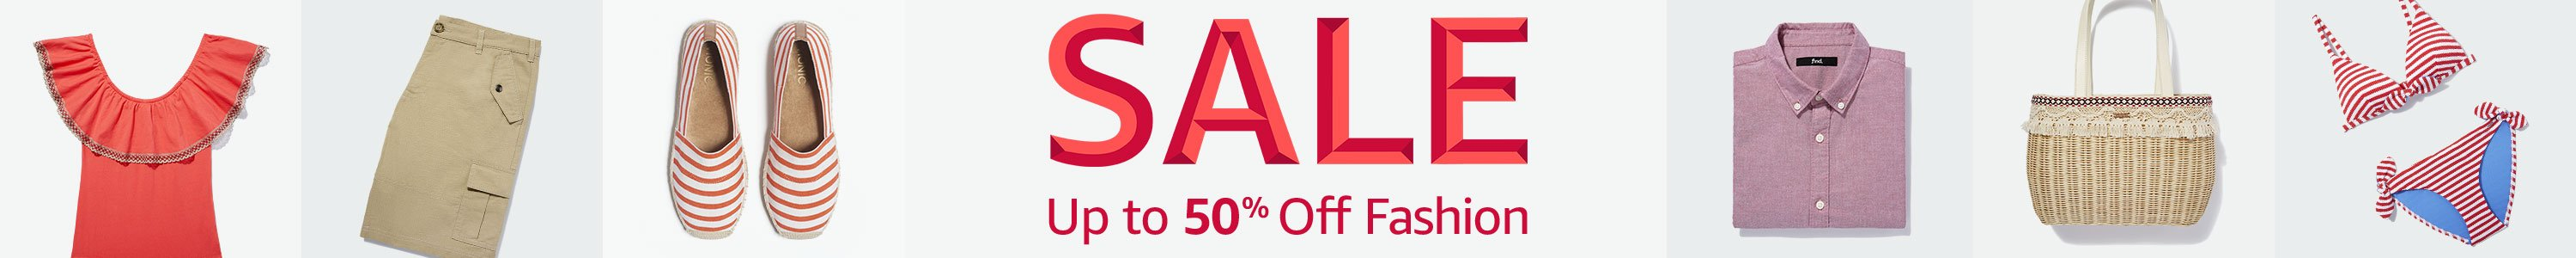 Upt to 50% off fashion